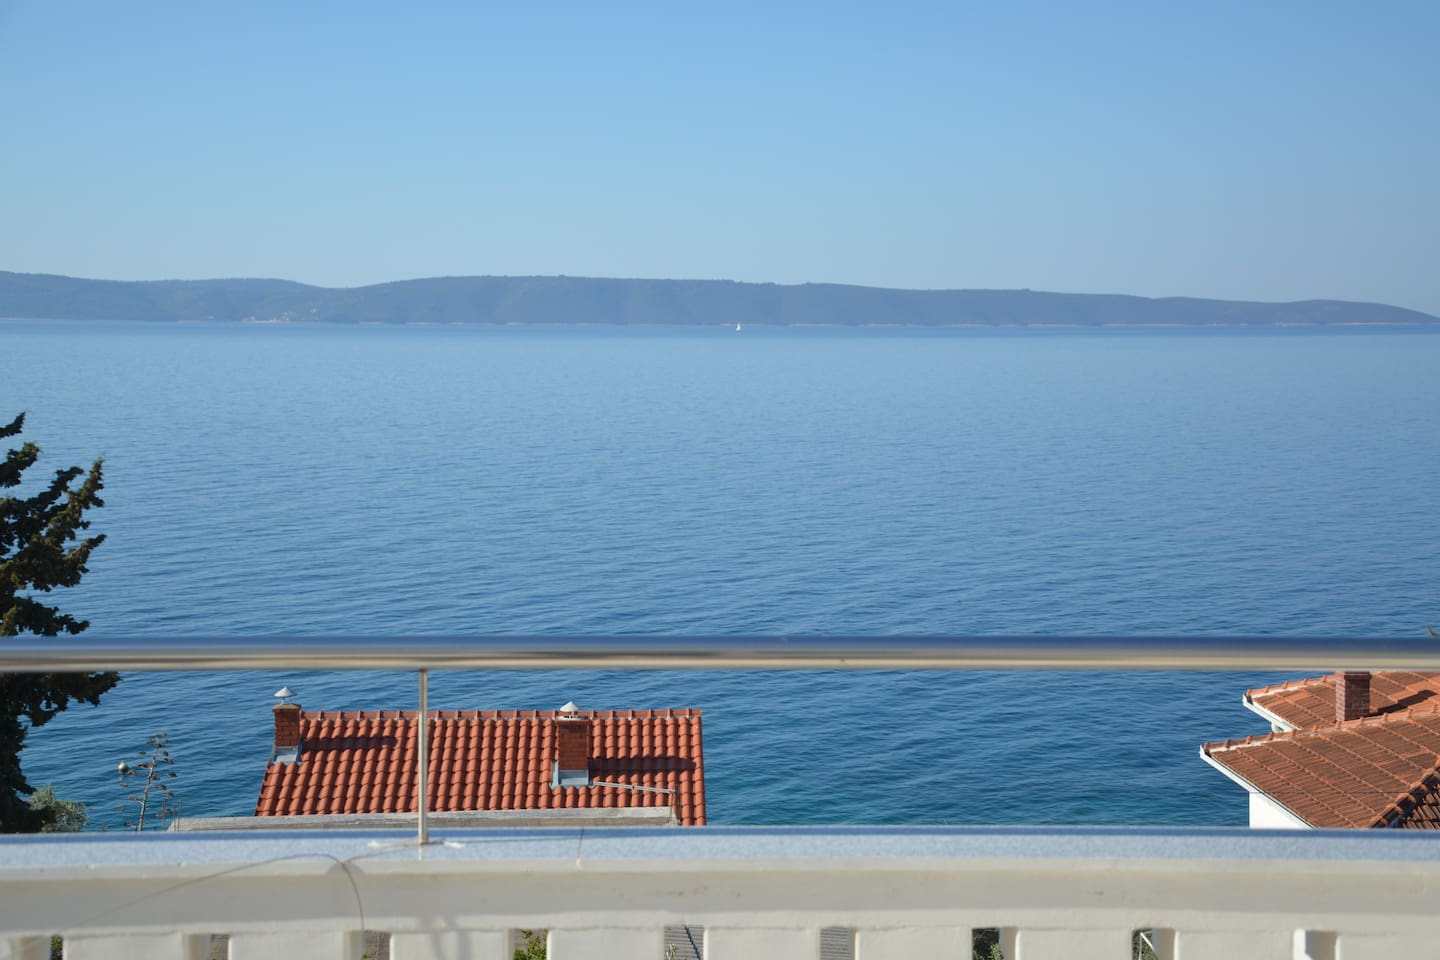 The view from terrace to sea and islands